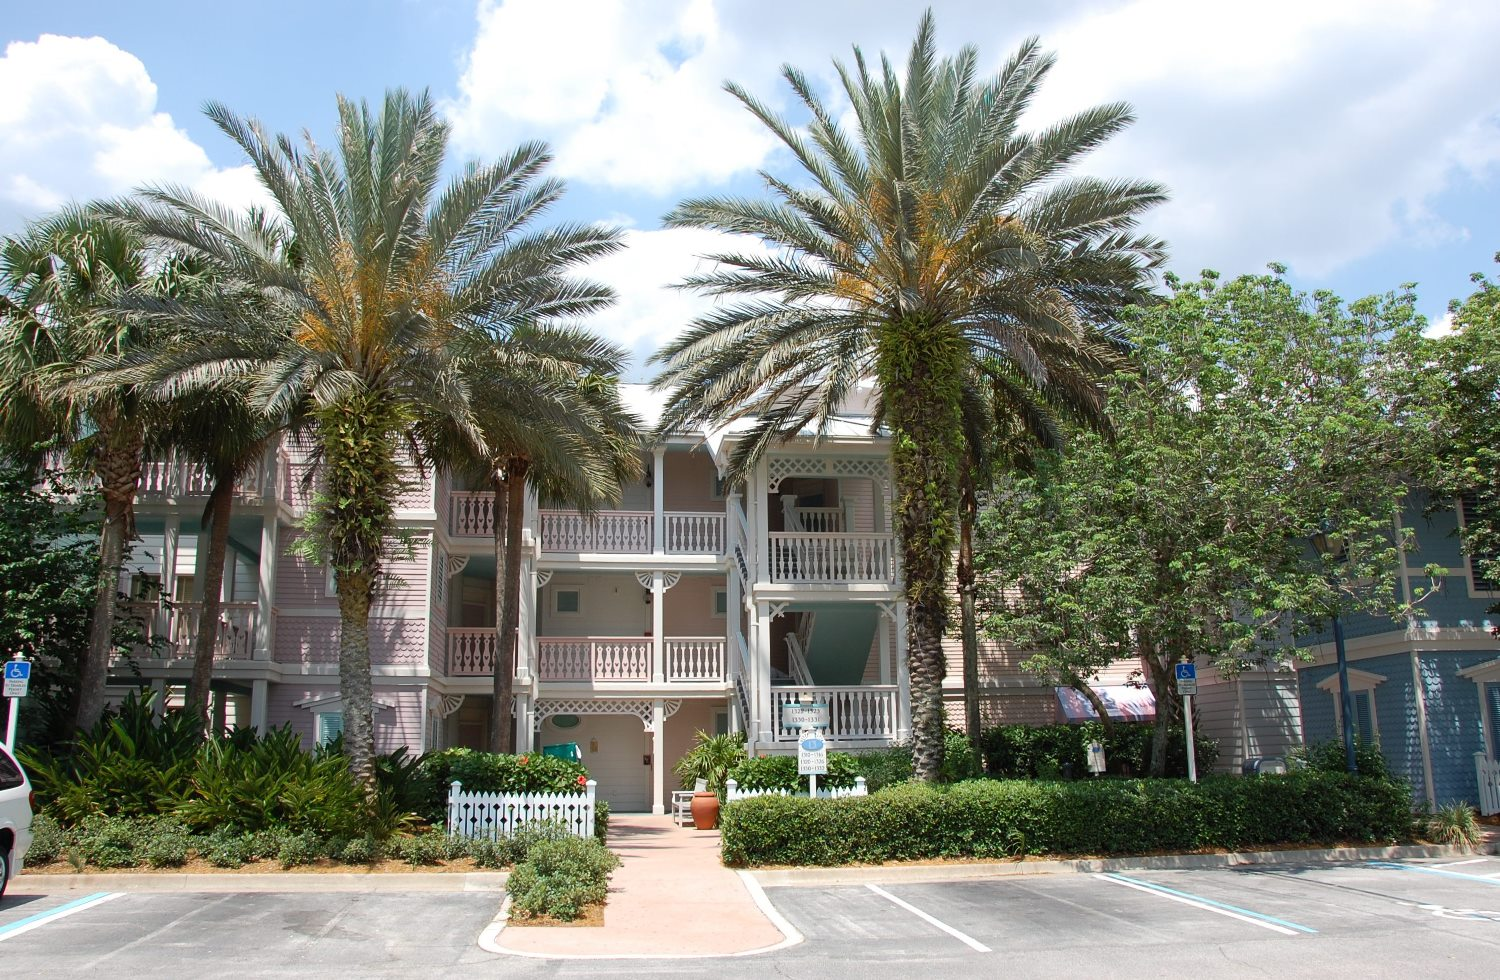 Old Key West Guest Building.  Most buildings have good access to nearby parking.